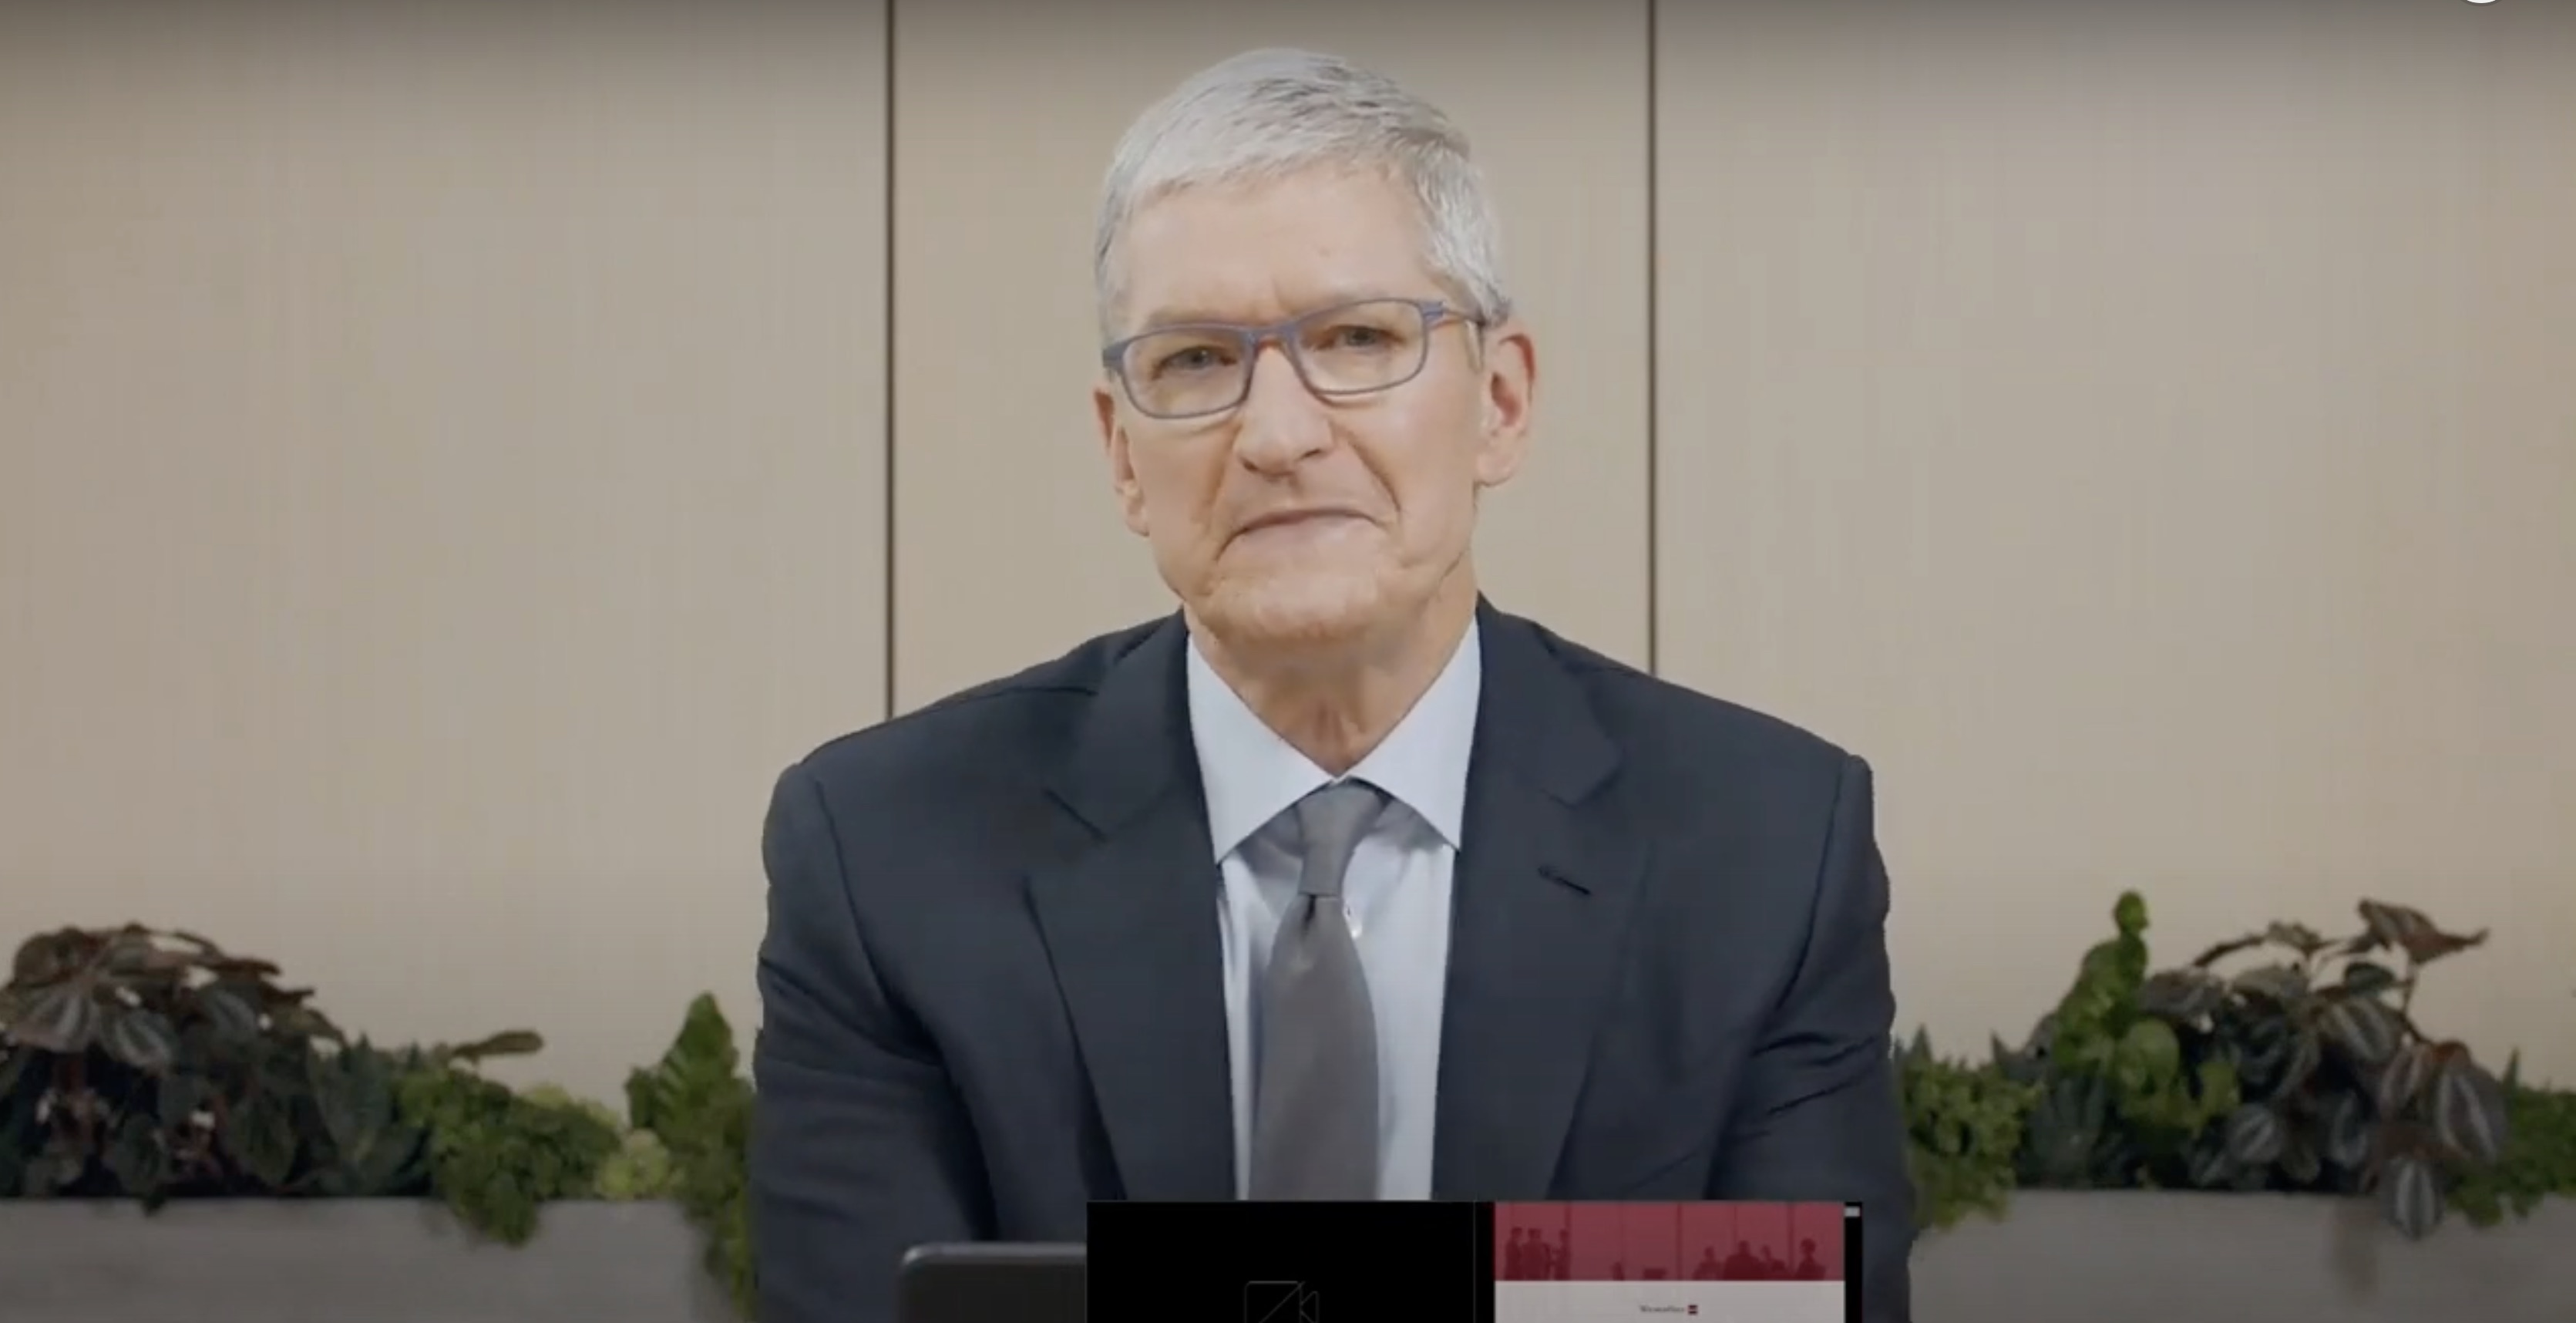 How to rewatch Tim Cook's testimony from the big tech antitrust hearing